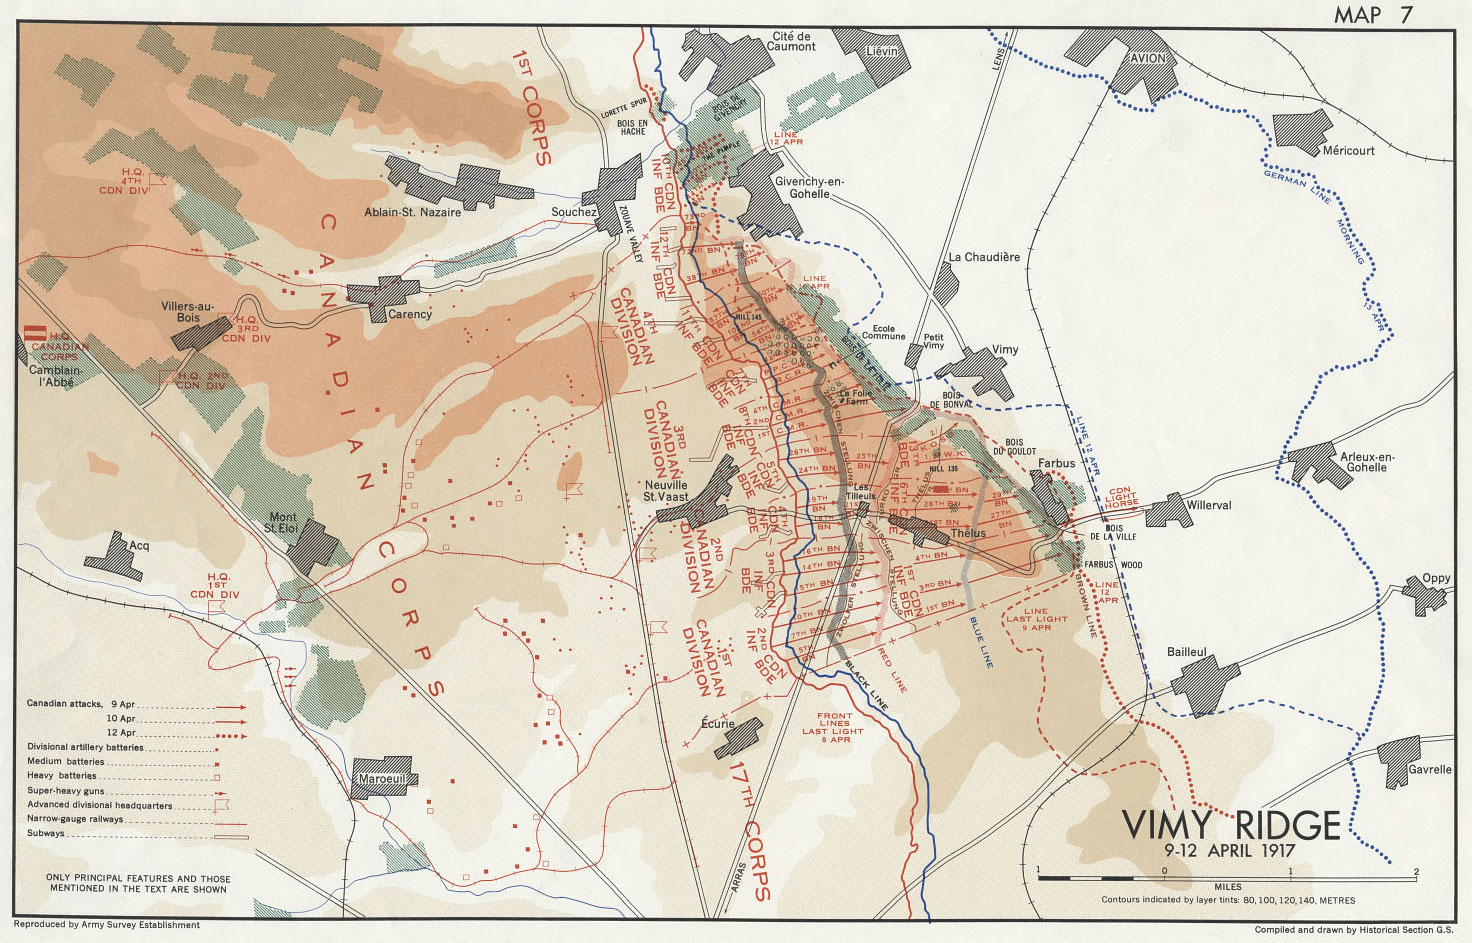 File:Vimy Ridge map-APRIL 9-April 12.jpg - Wikipedia, the free ...